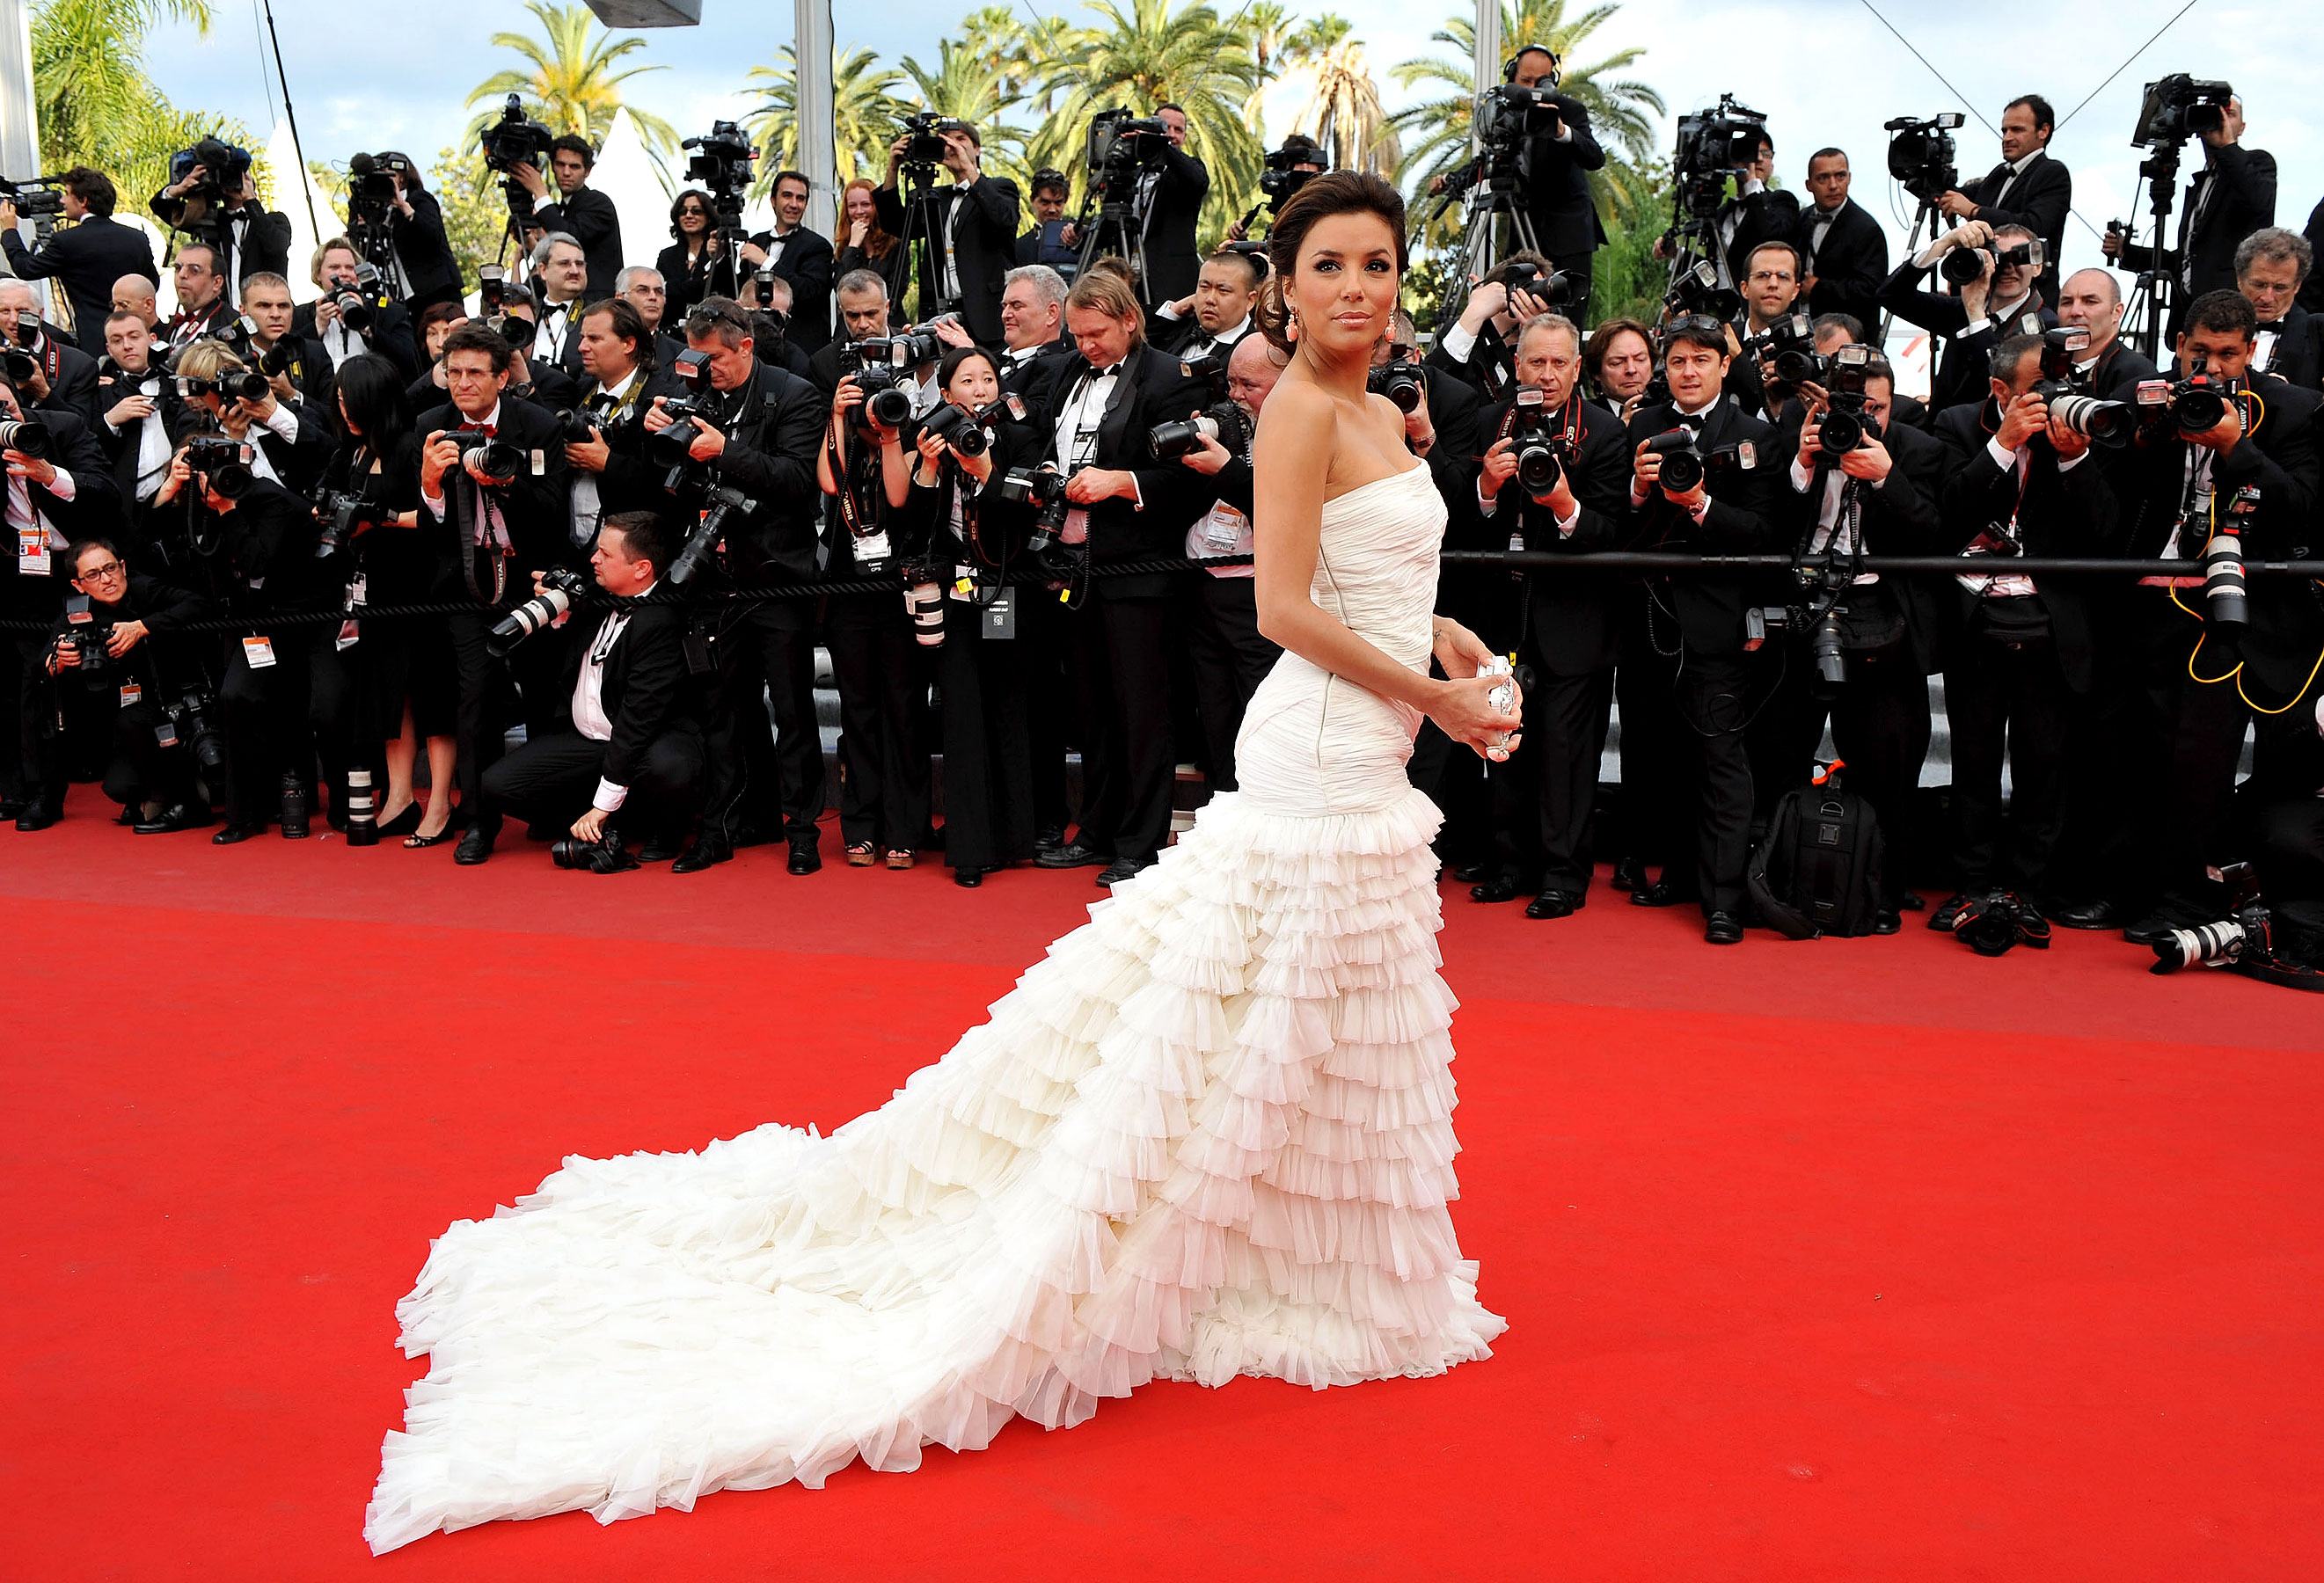 Amazing Eva Longoria White Dress With Romantic Style Look In Award Function Mobile Desktop Background Free Images